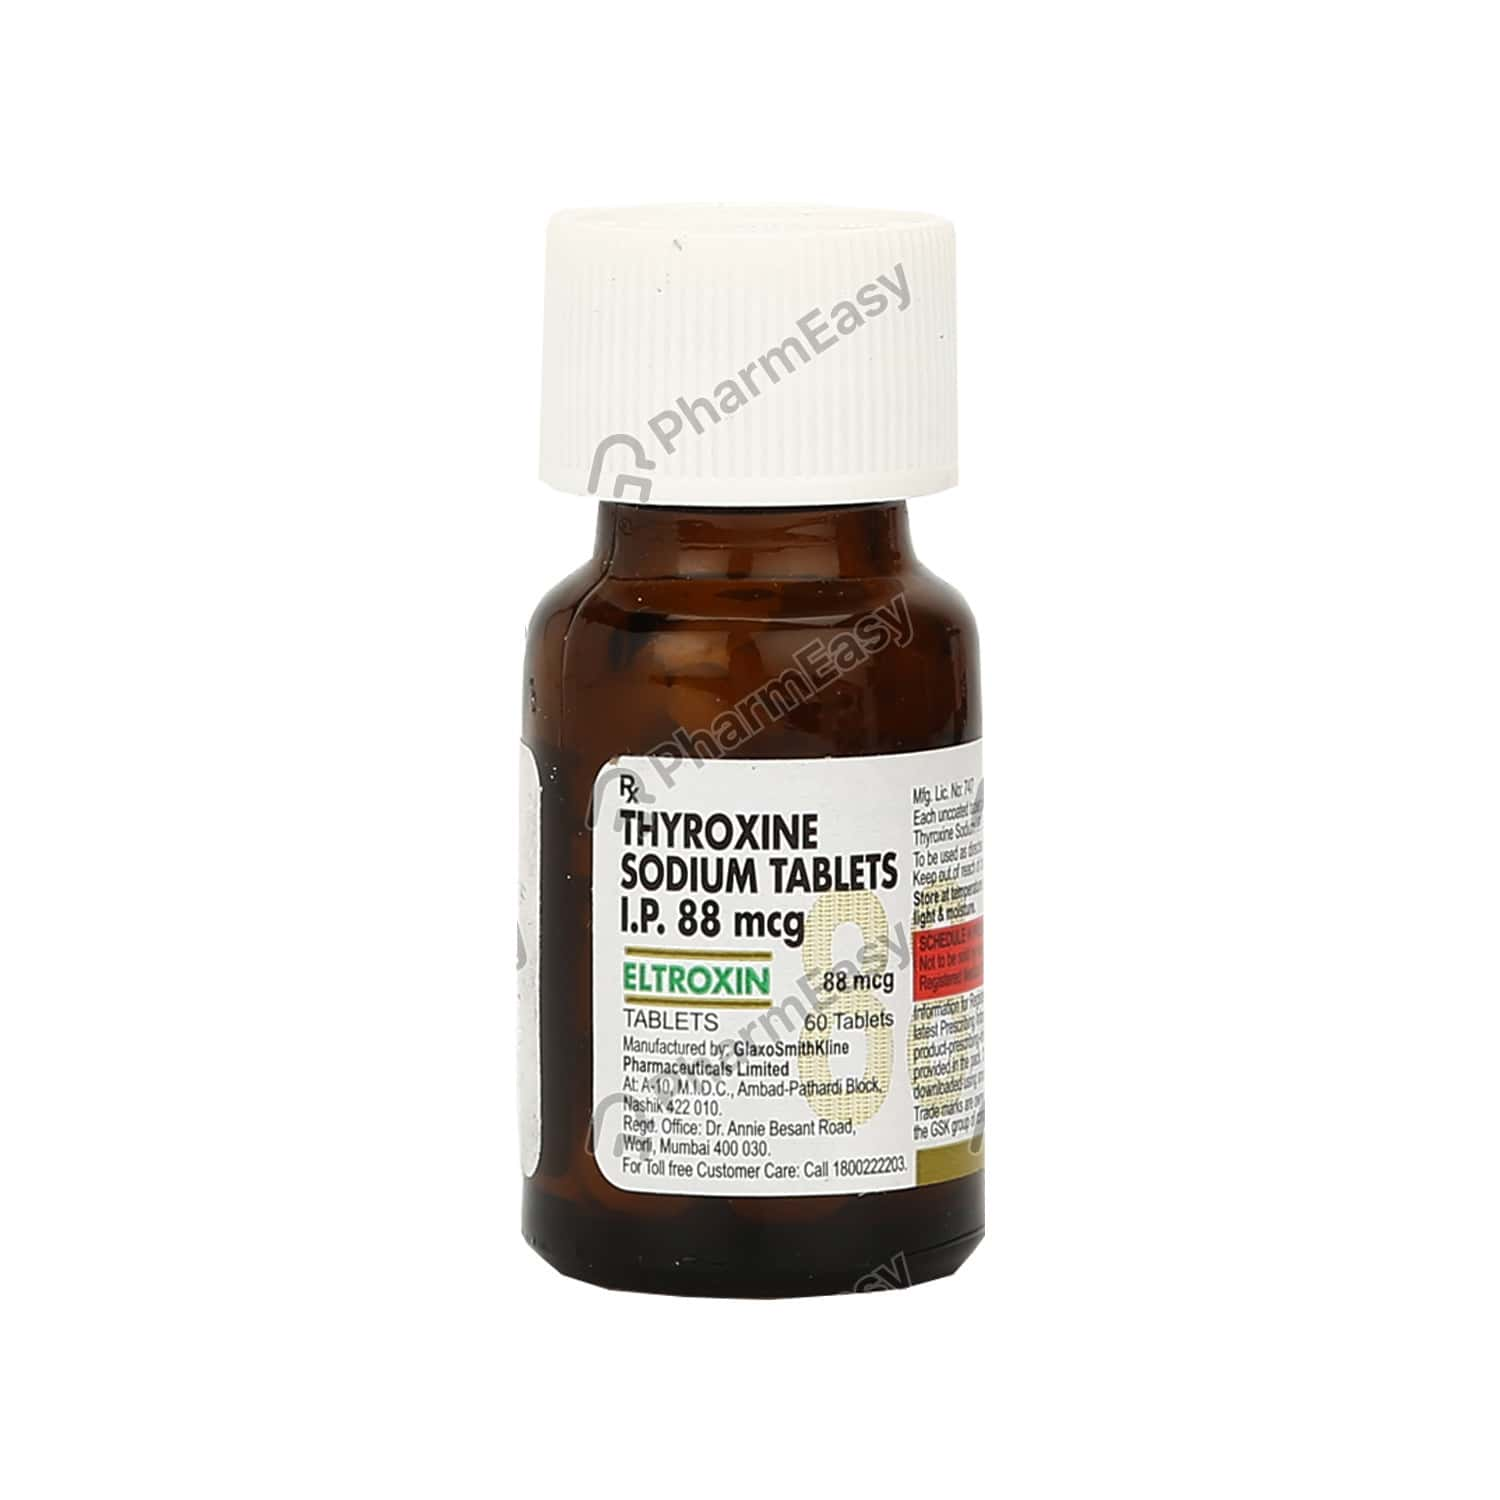 Eltroxin 88mcg Tablet